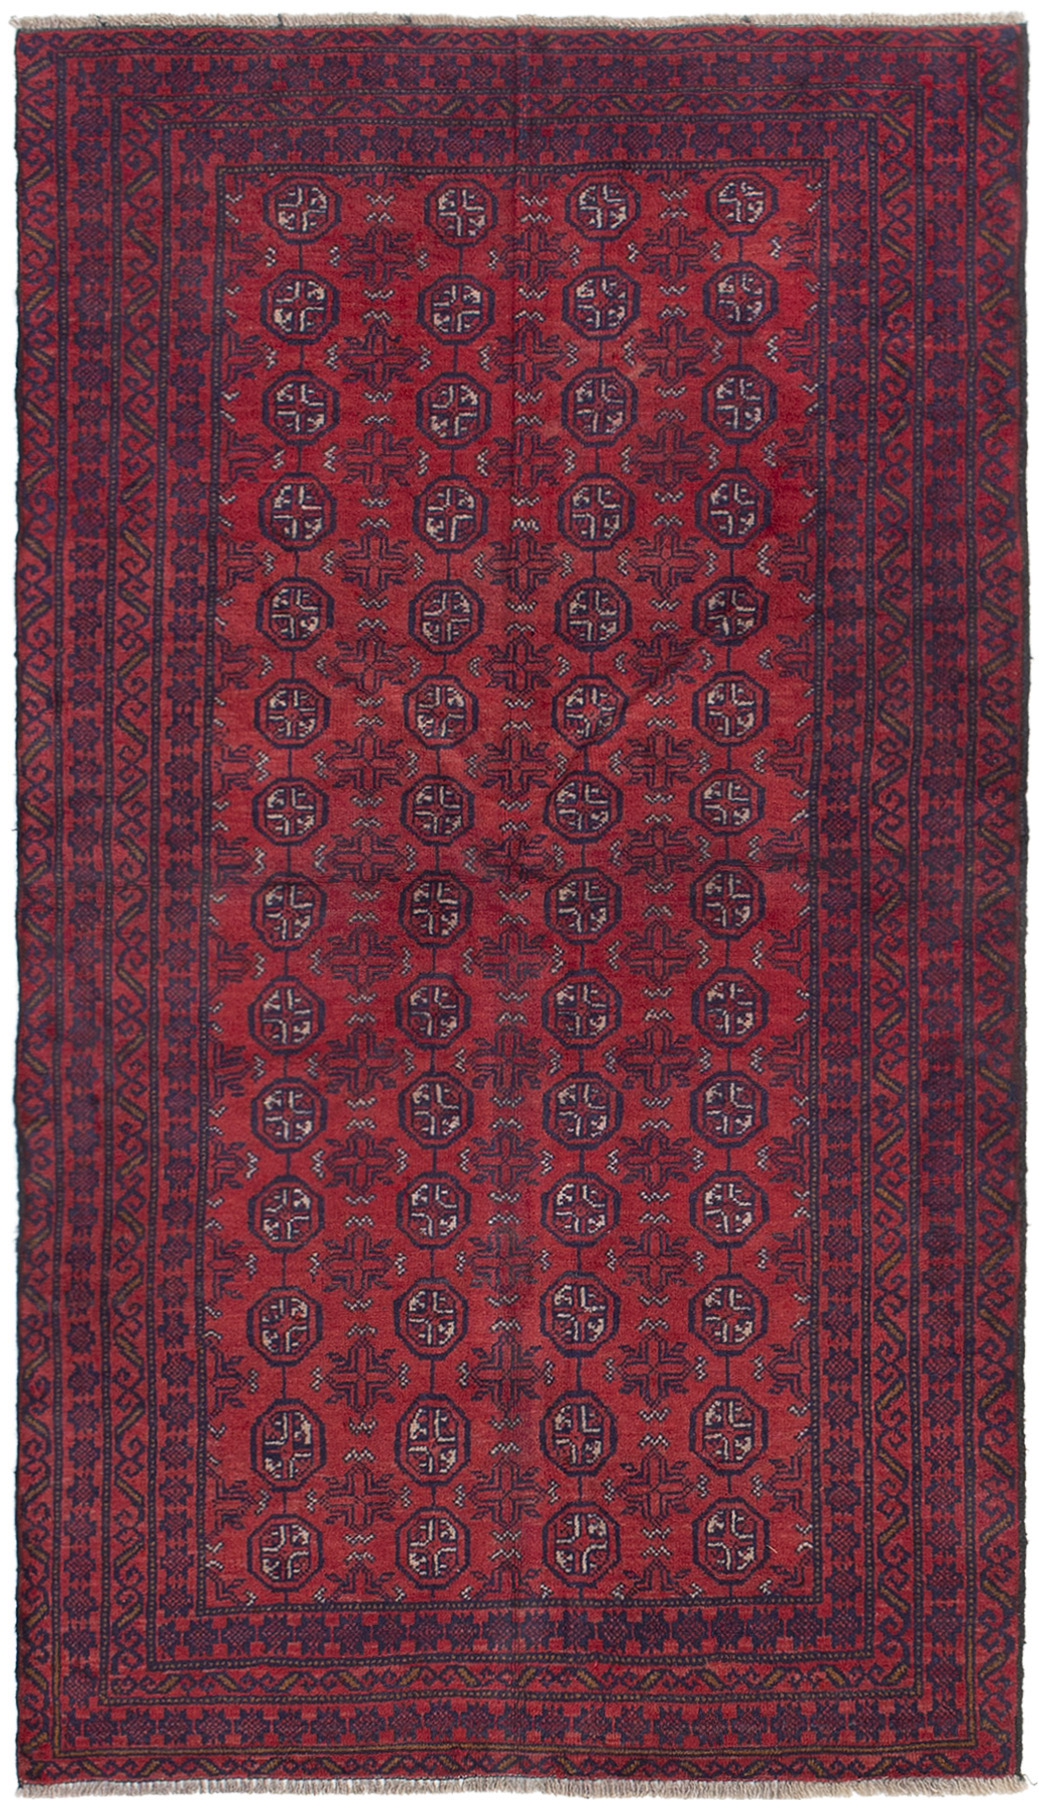 """Hand-knotted Rizbaft Red Wool Rug 3'5"""" x 6'2""""  Size: 3'5"""" x 6'2"""""""